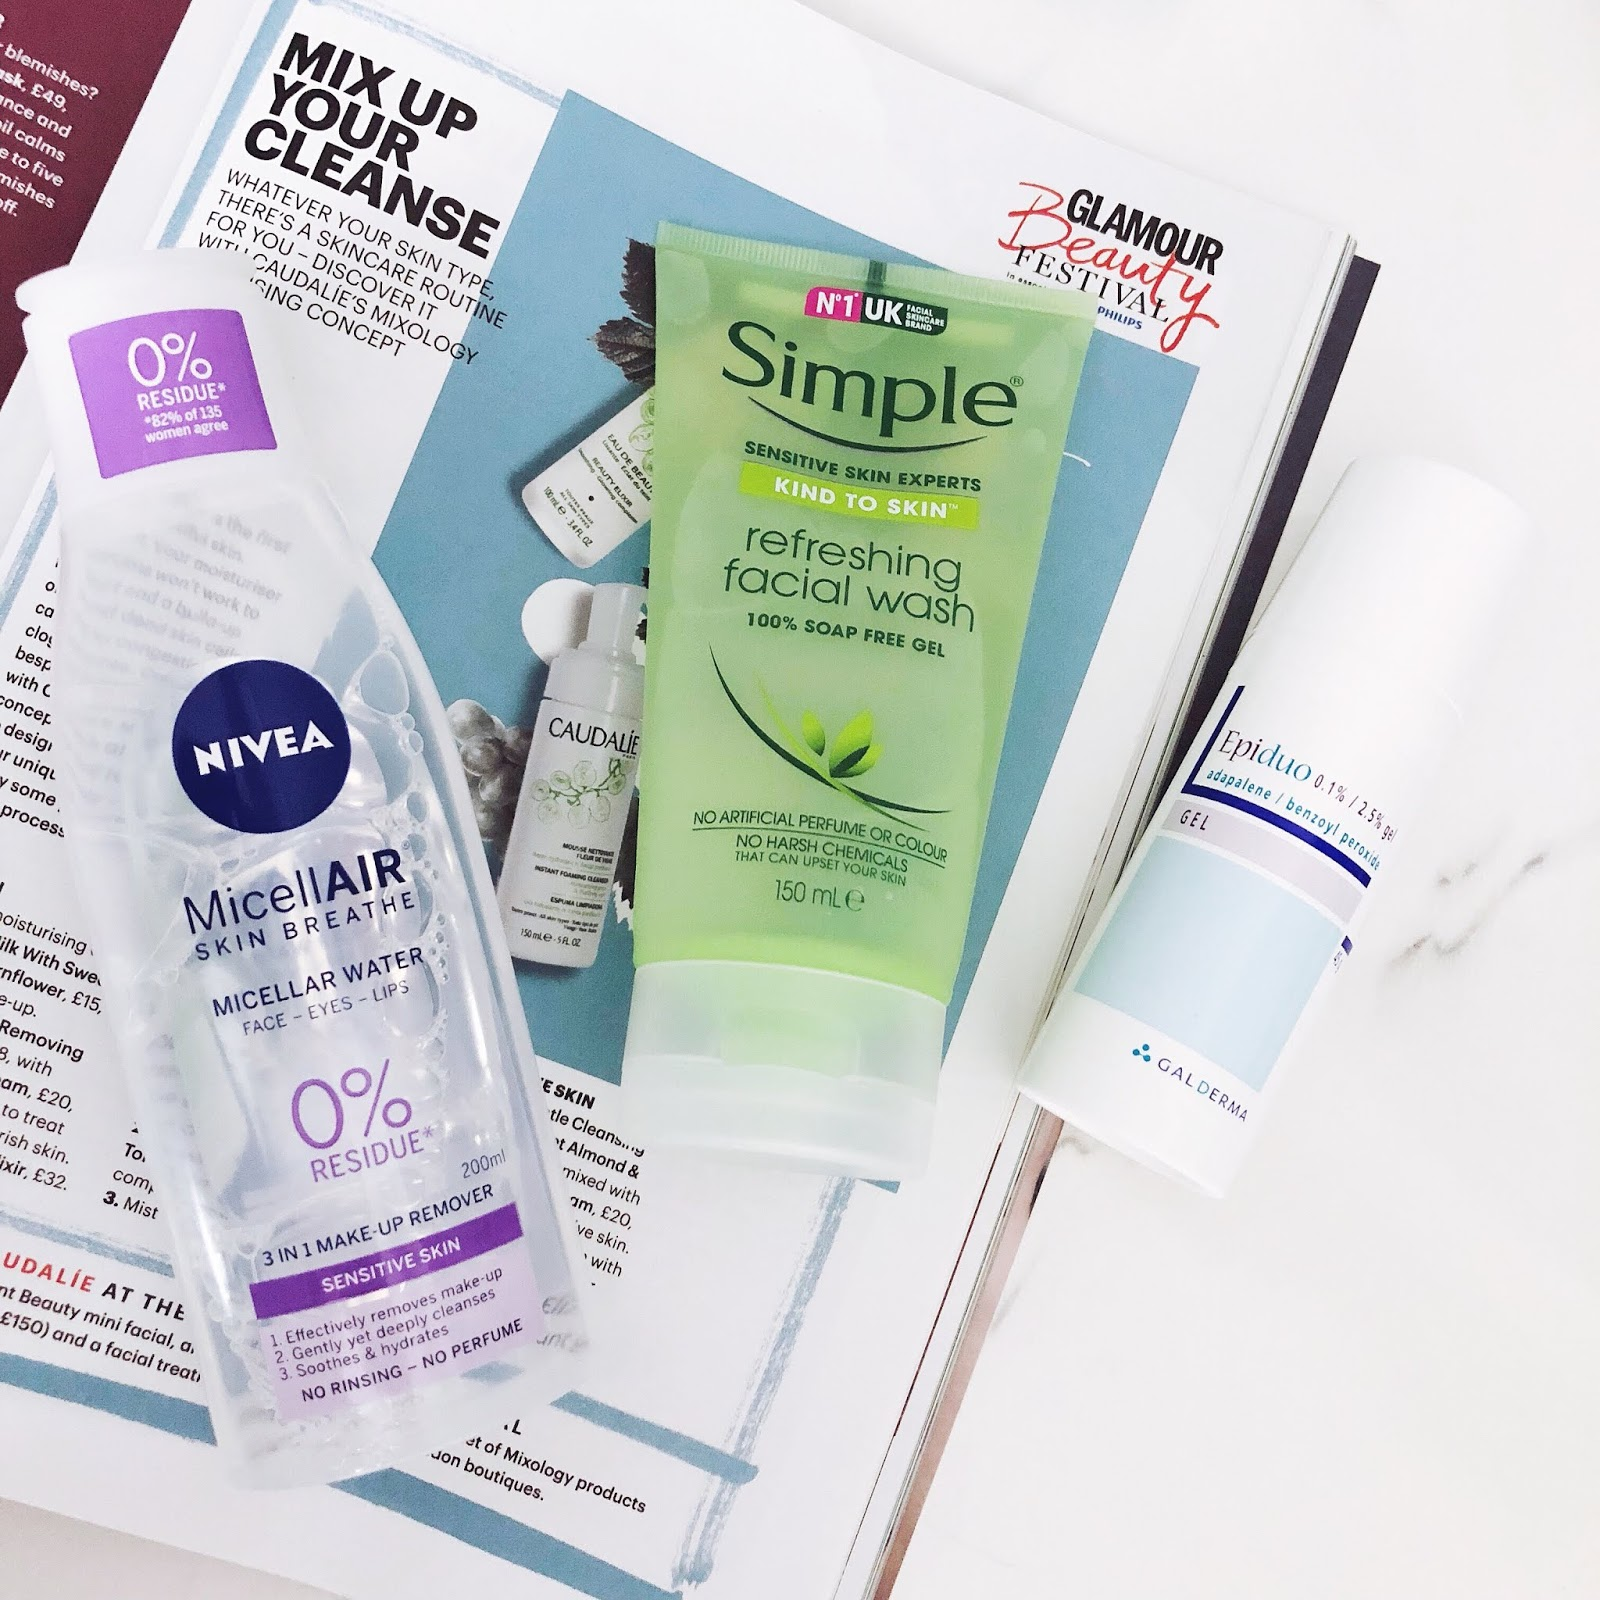 nivea micellar water, simple facial wash, epiduo